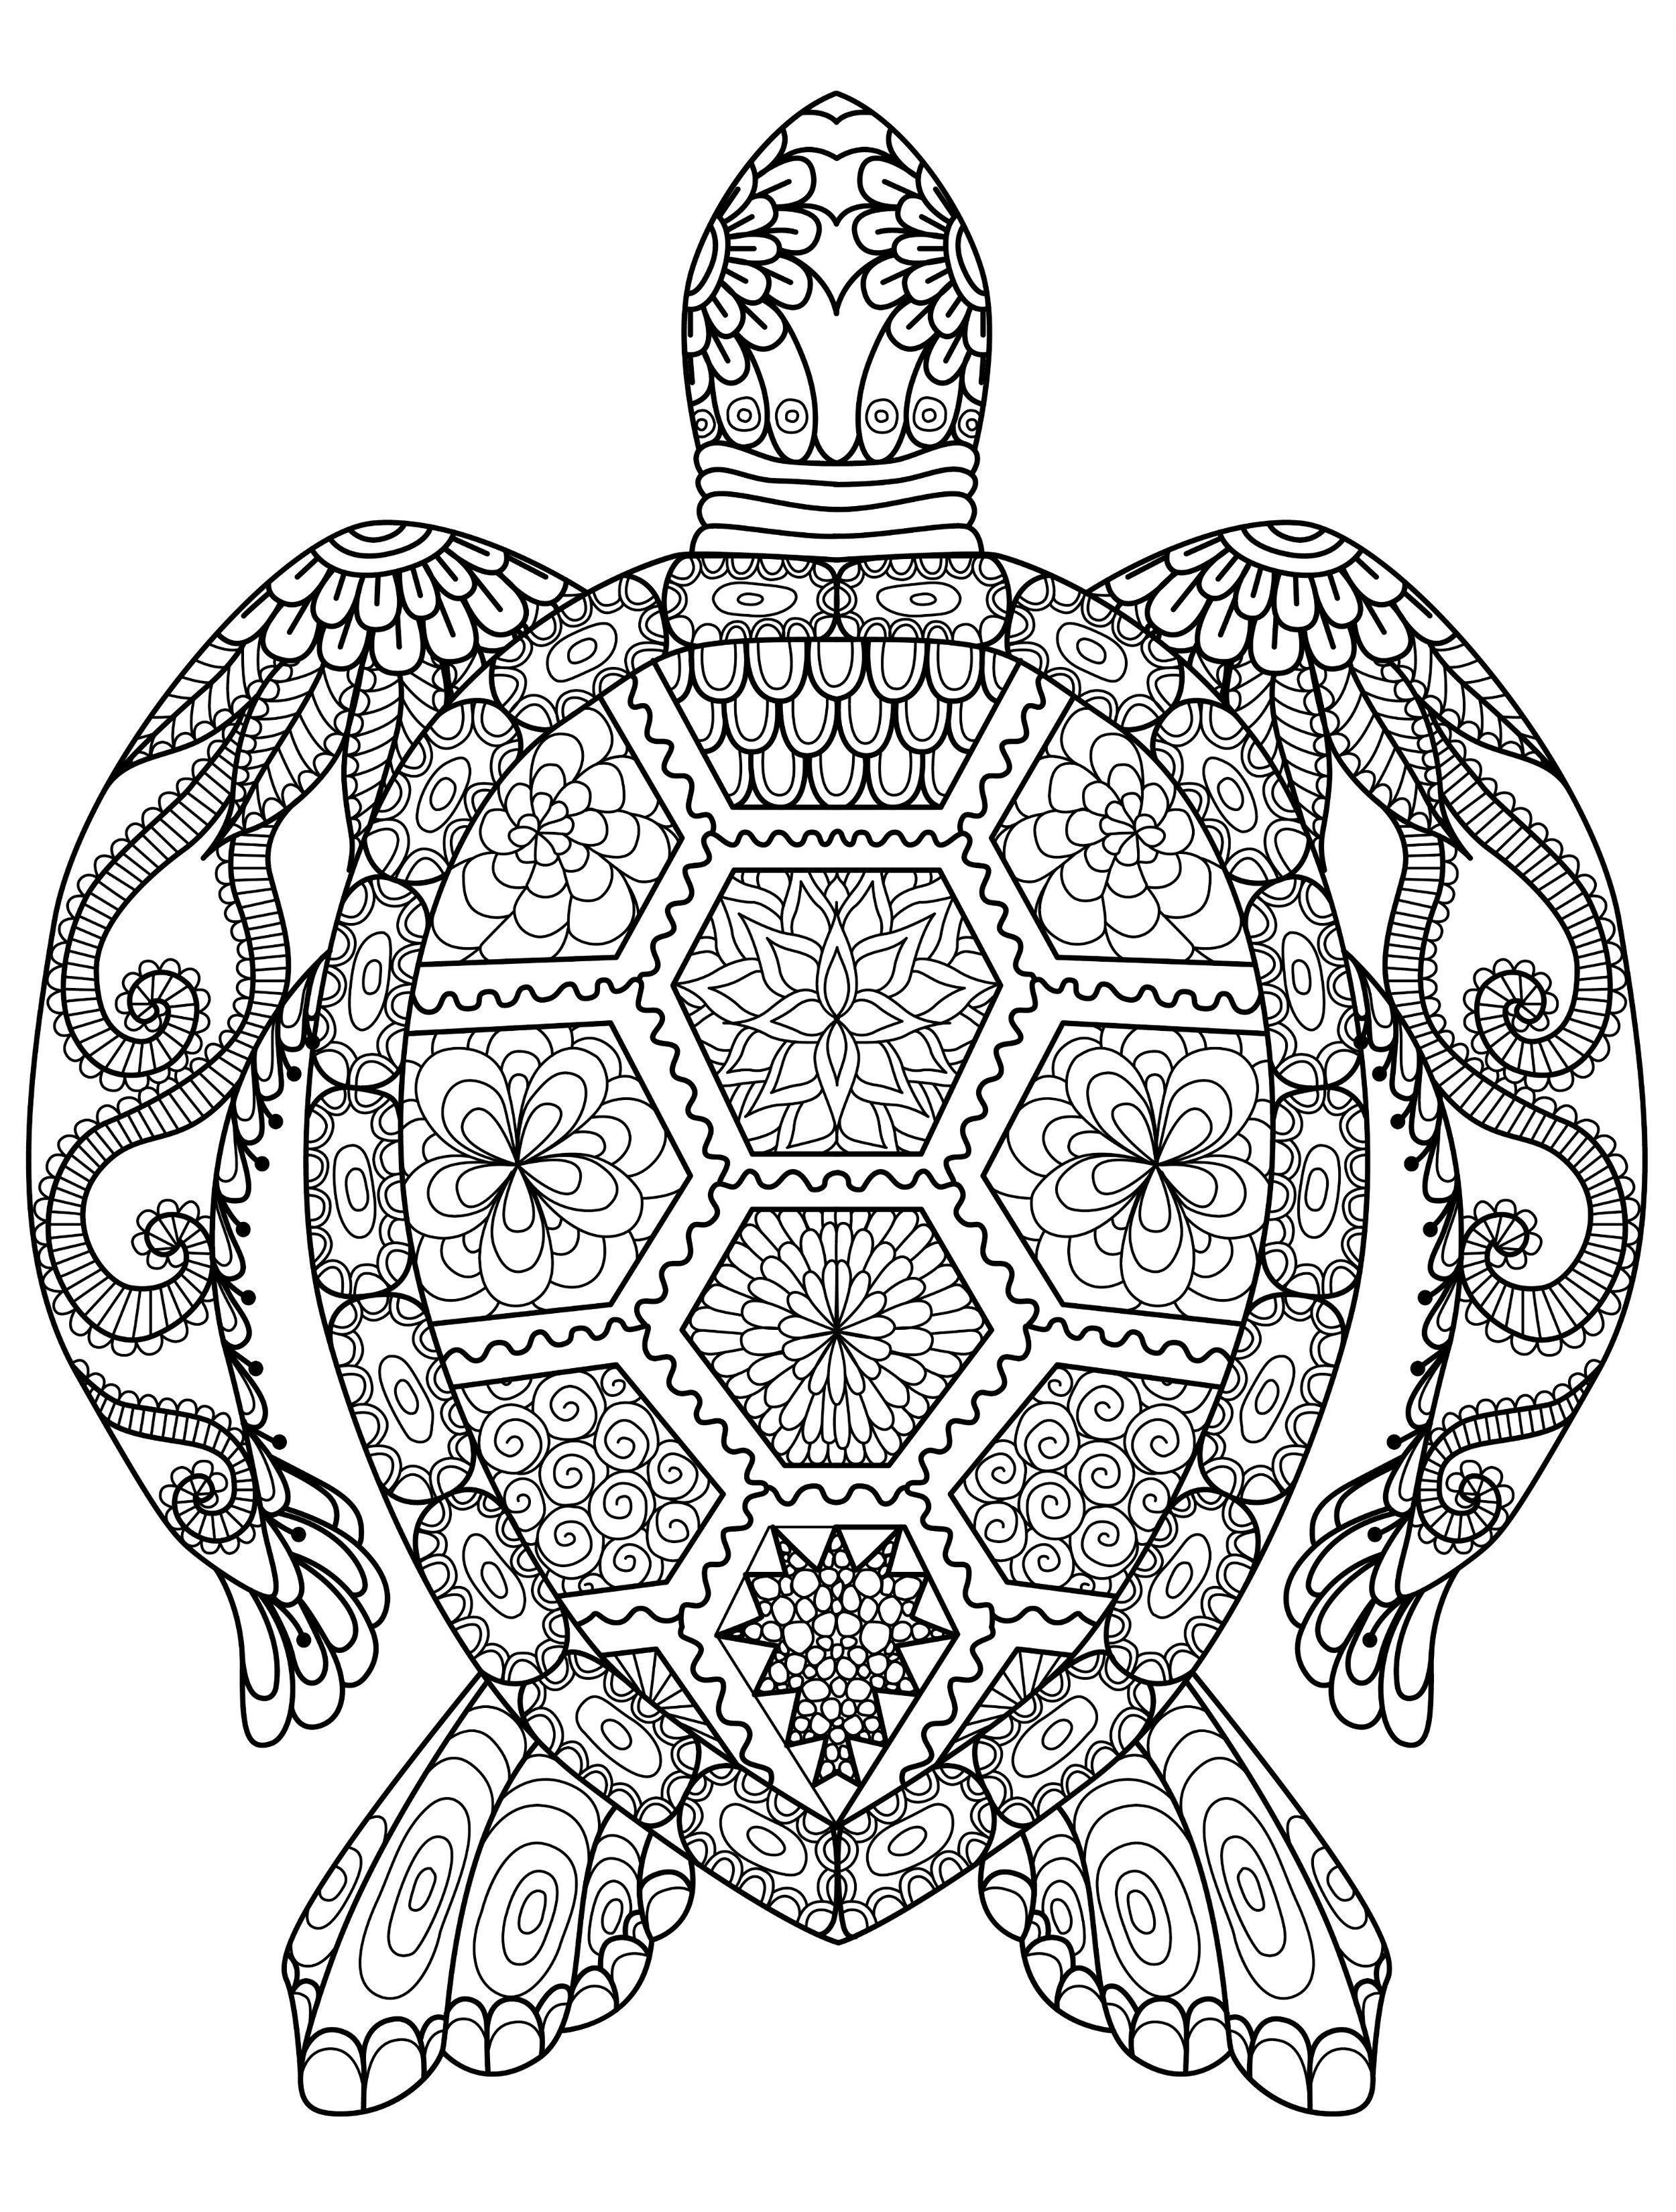 Animal Mandala Coloring Pages Turtle coloring pages